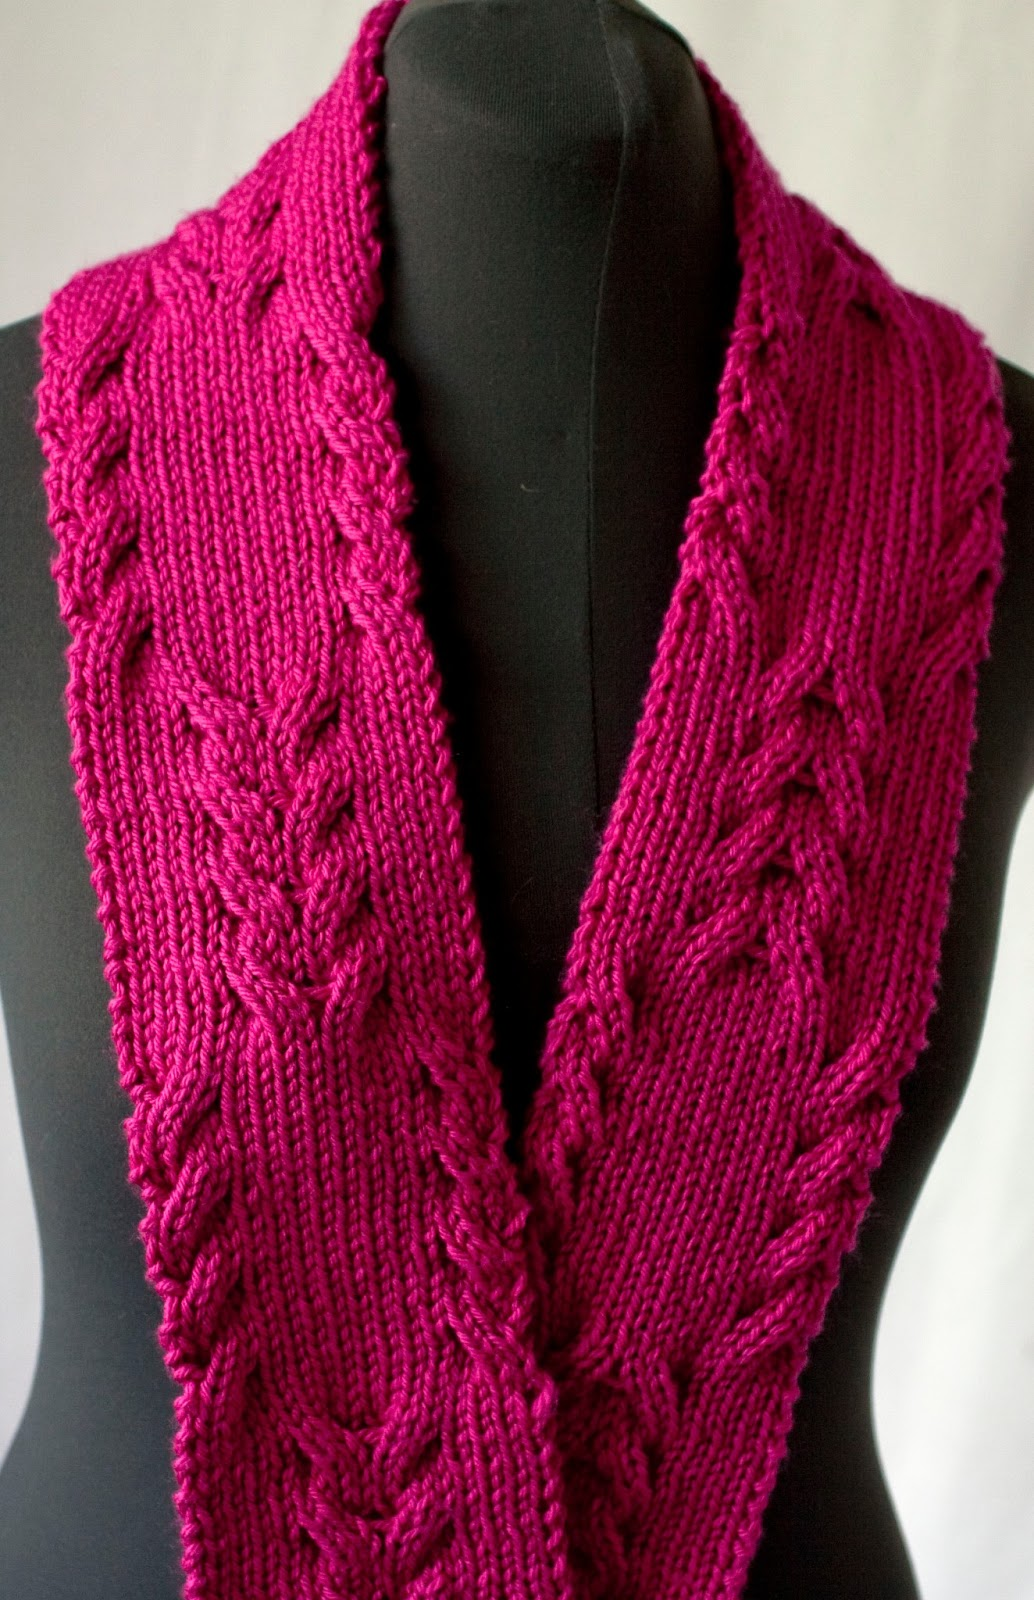 Reversible Knitting Patterns For Scarves Awesome Design